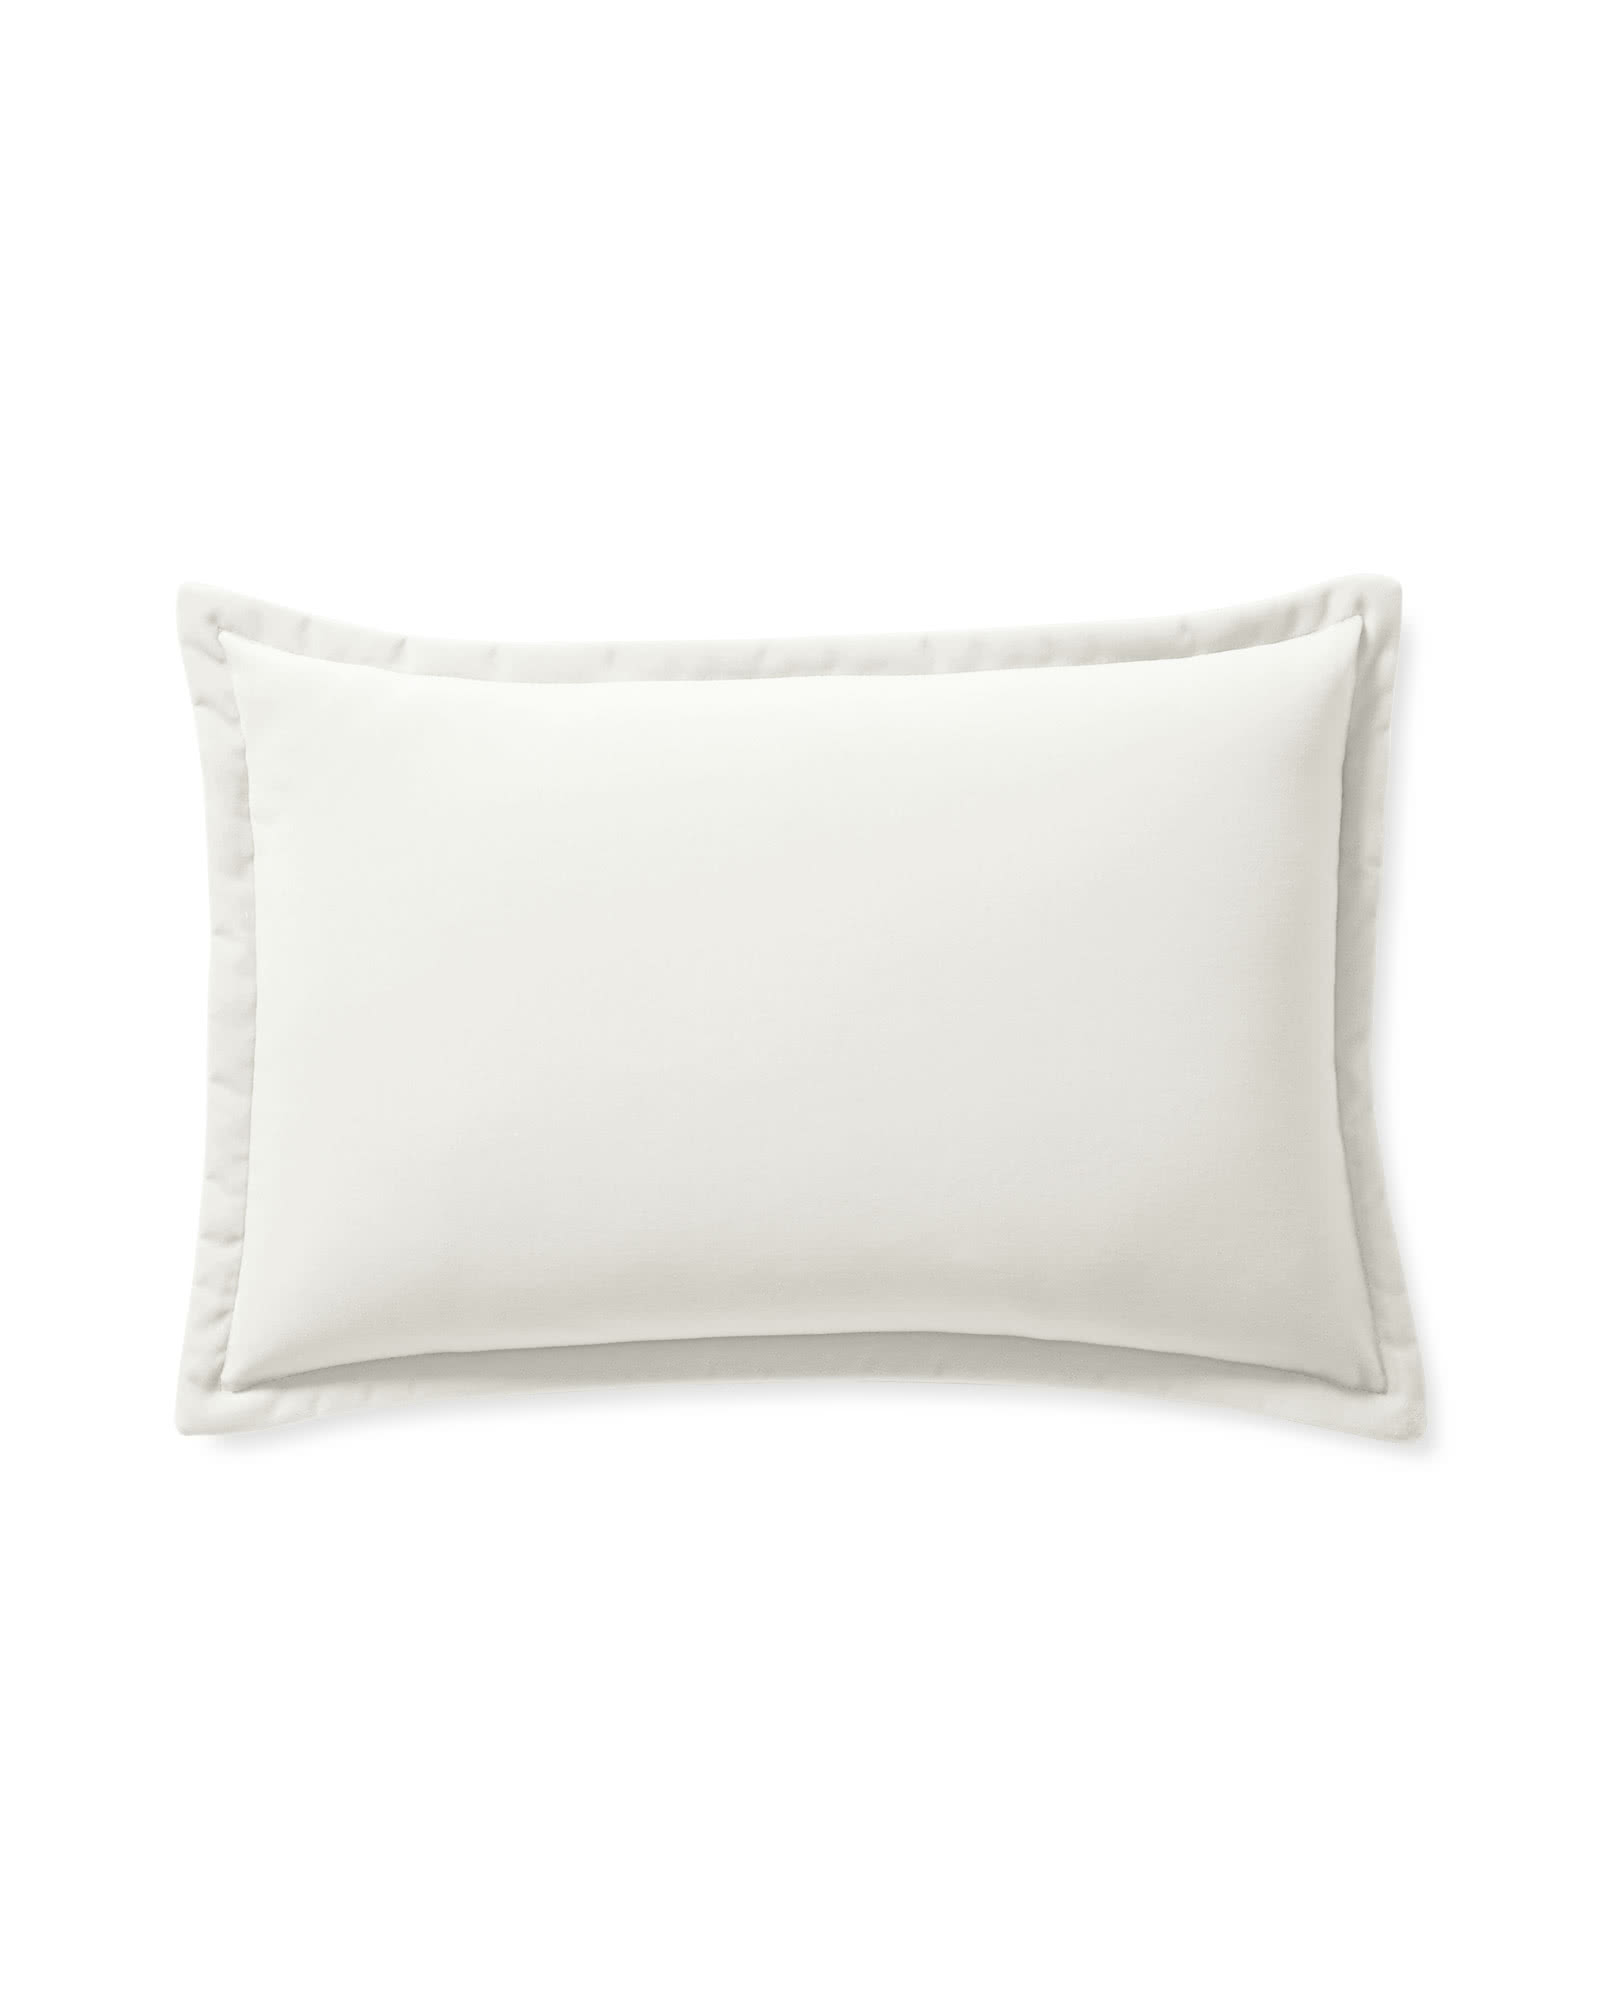 Quinn Velvet Pillow Cover, Ivory